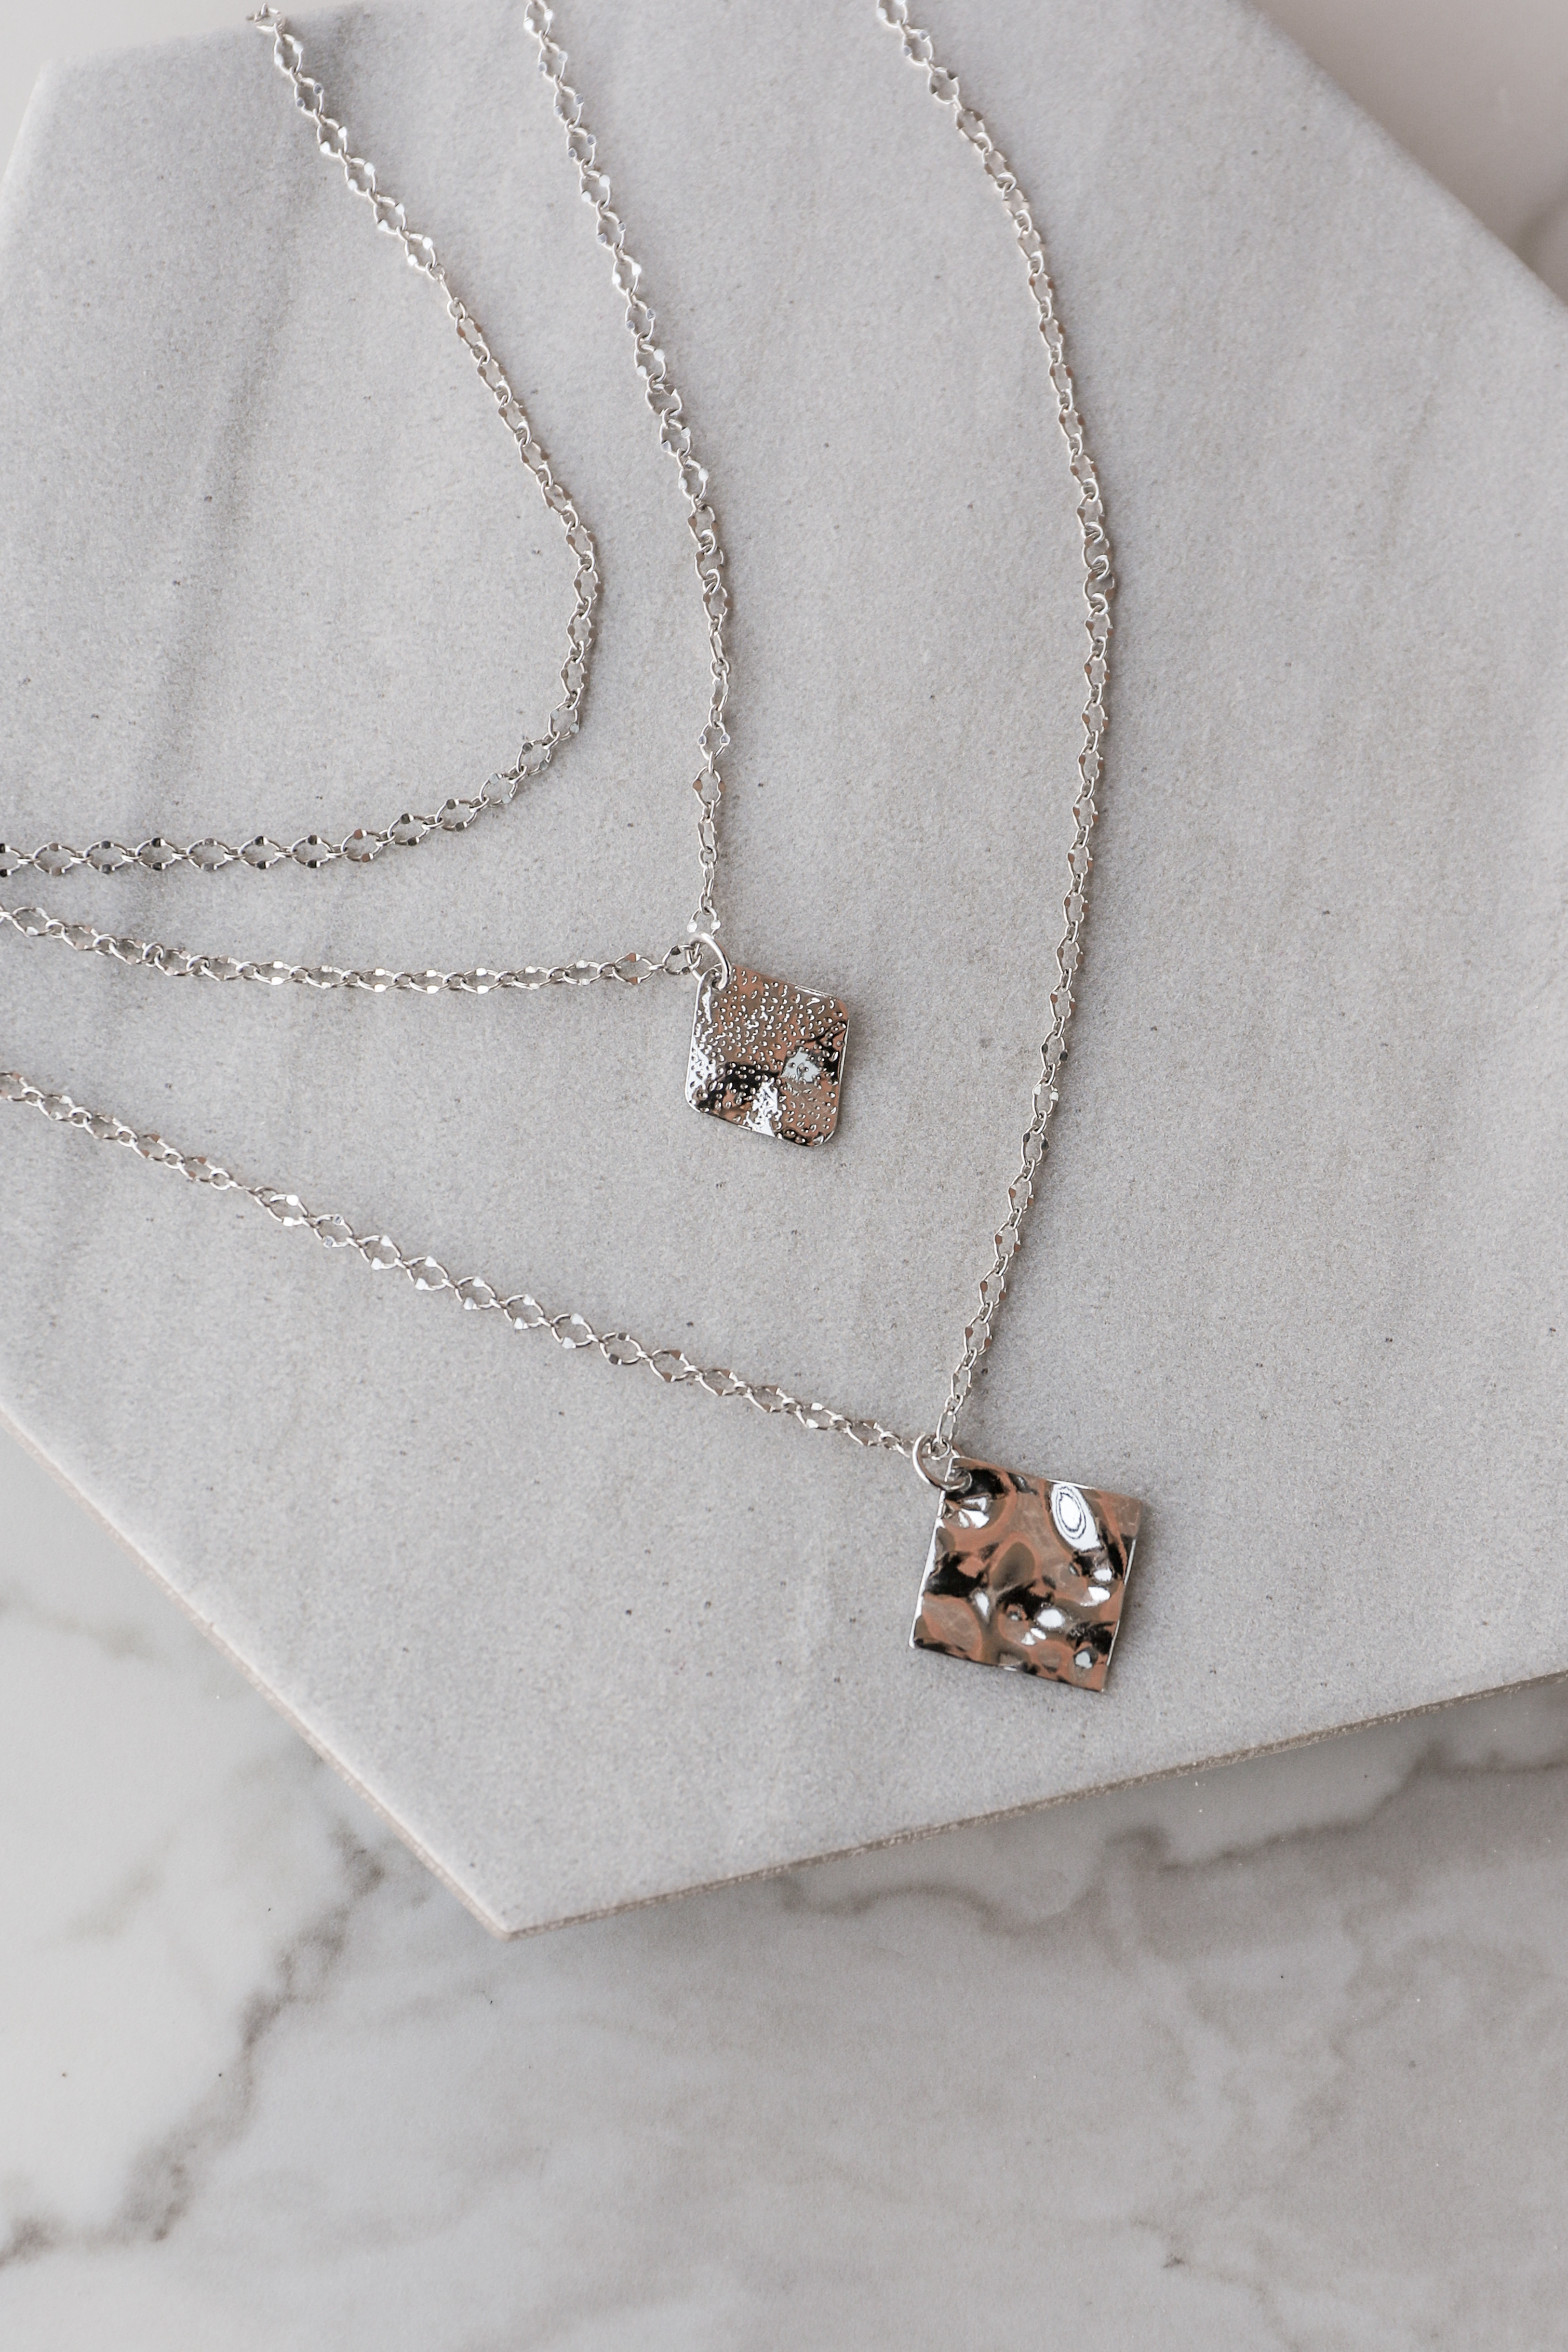 Silver Layered Necklace with Textured Square Pendants